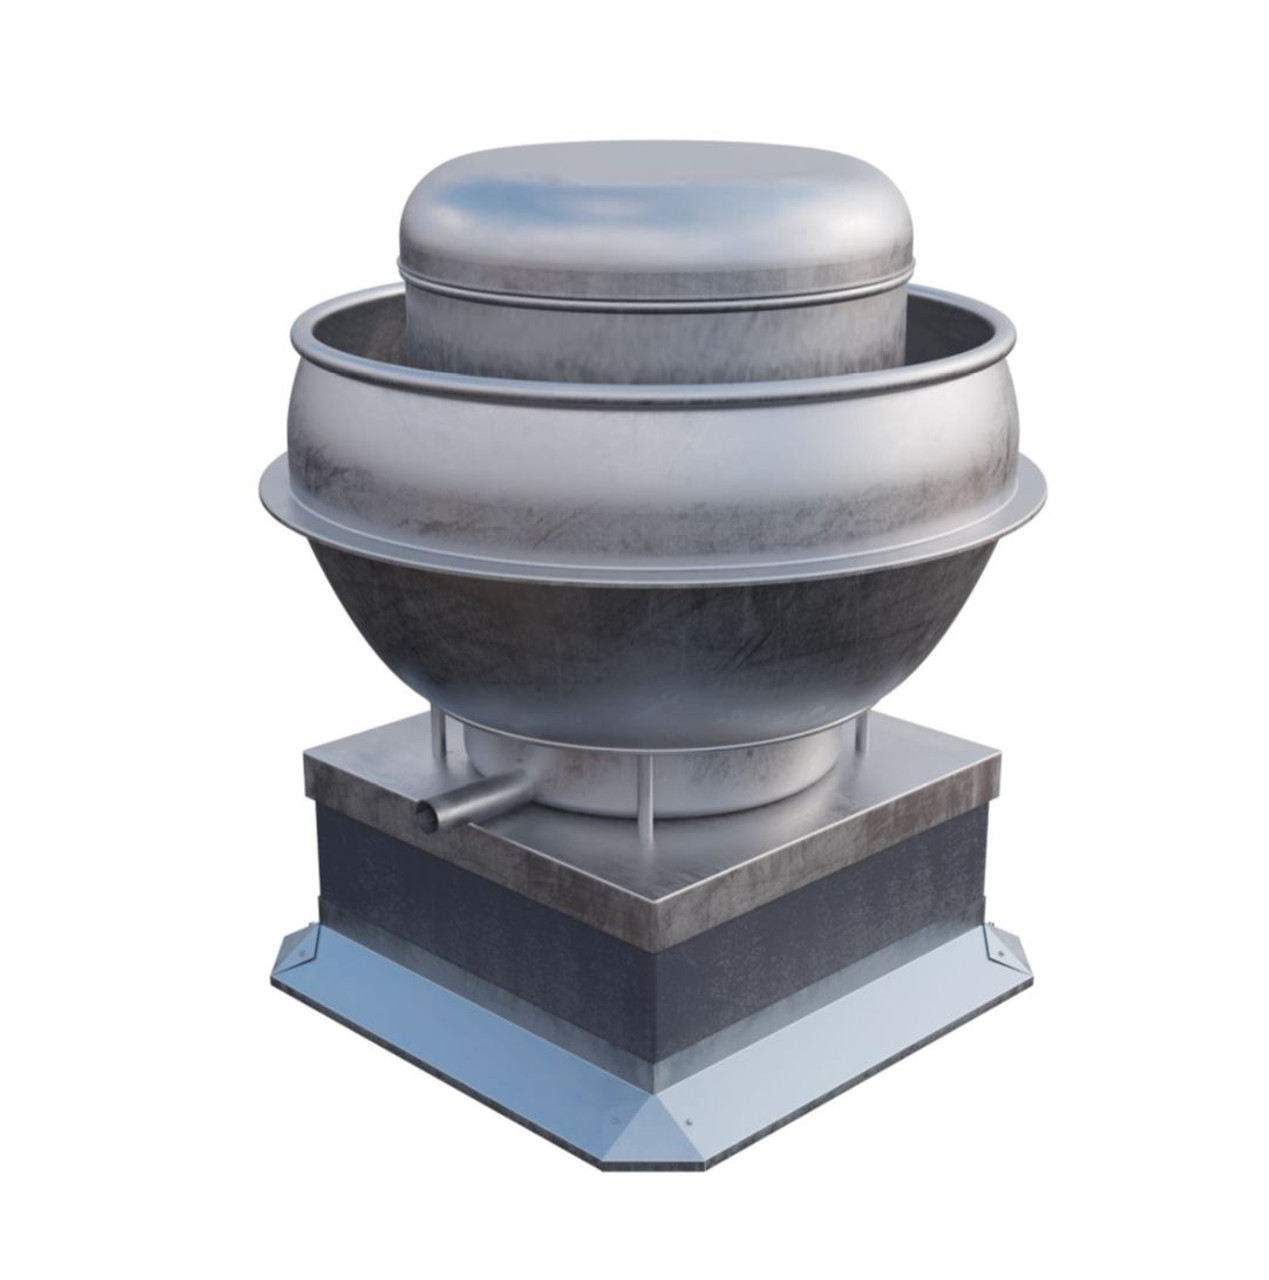 Roof Curbs Deflector for Exhaust Fan Base